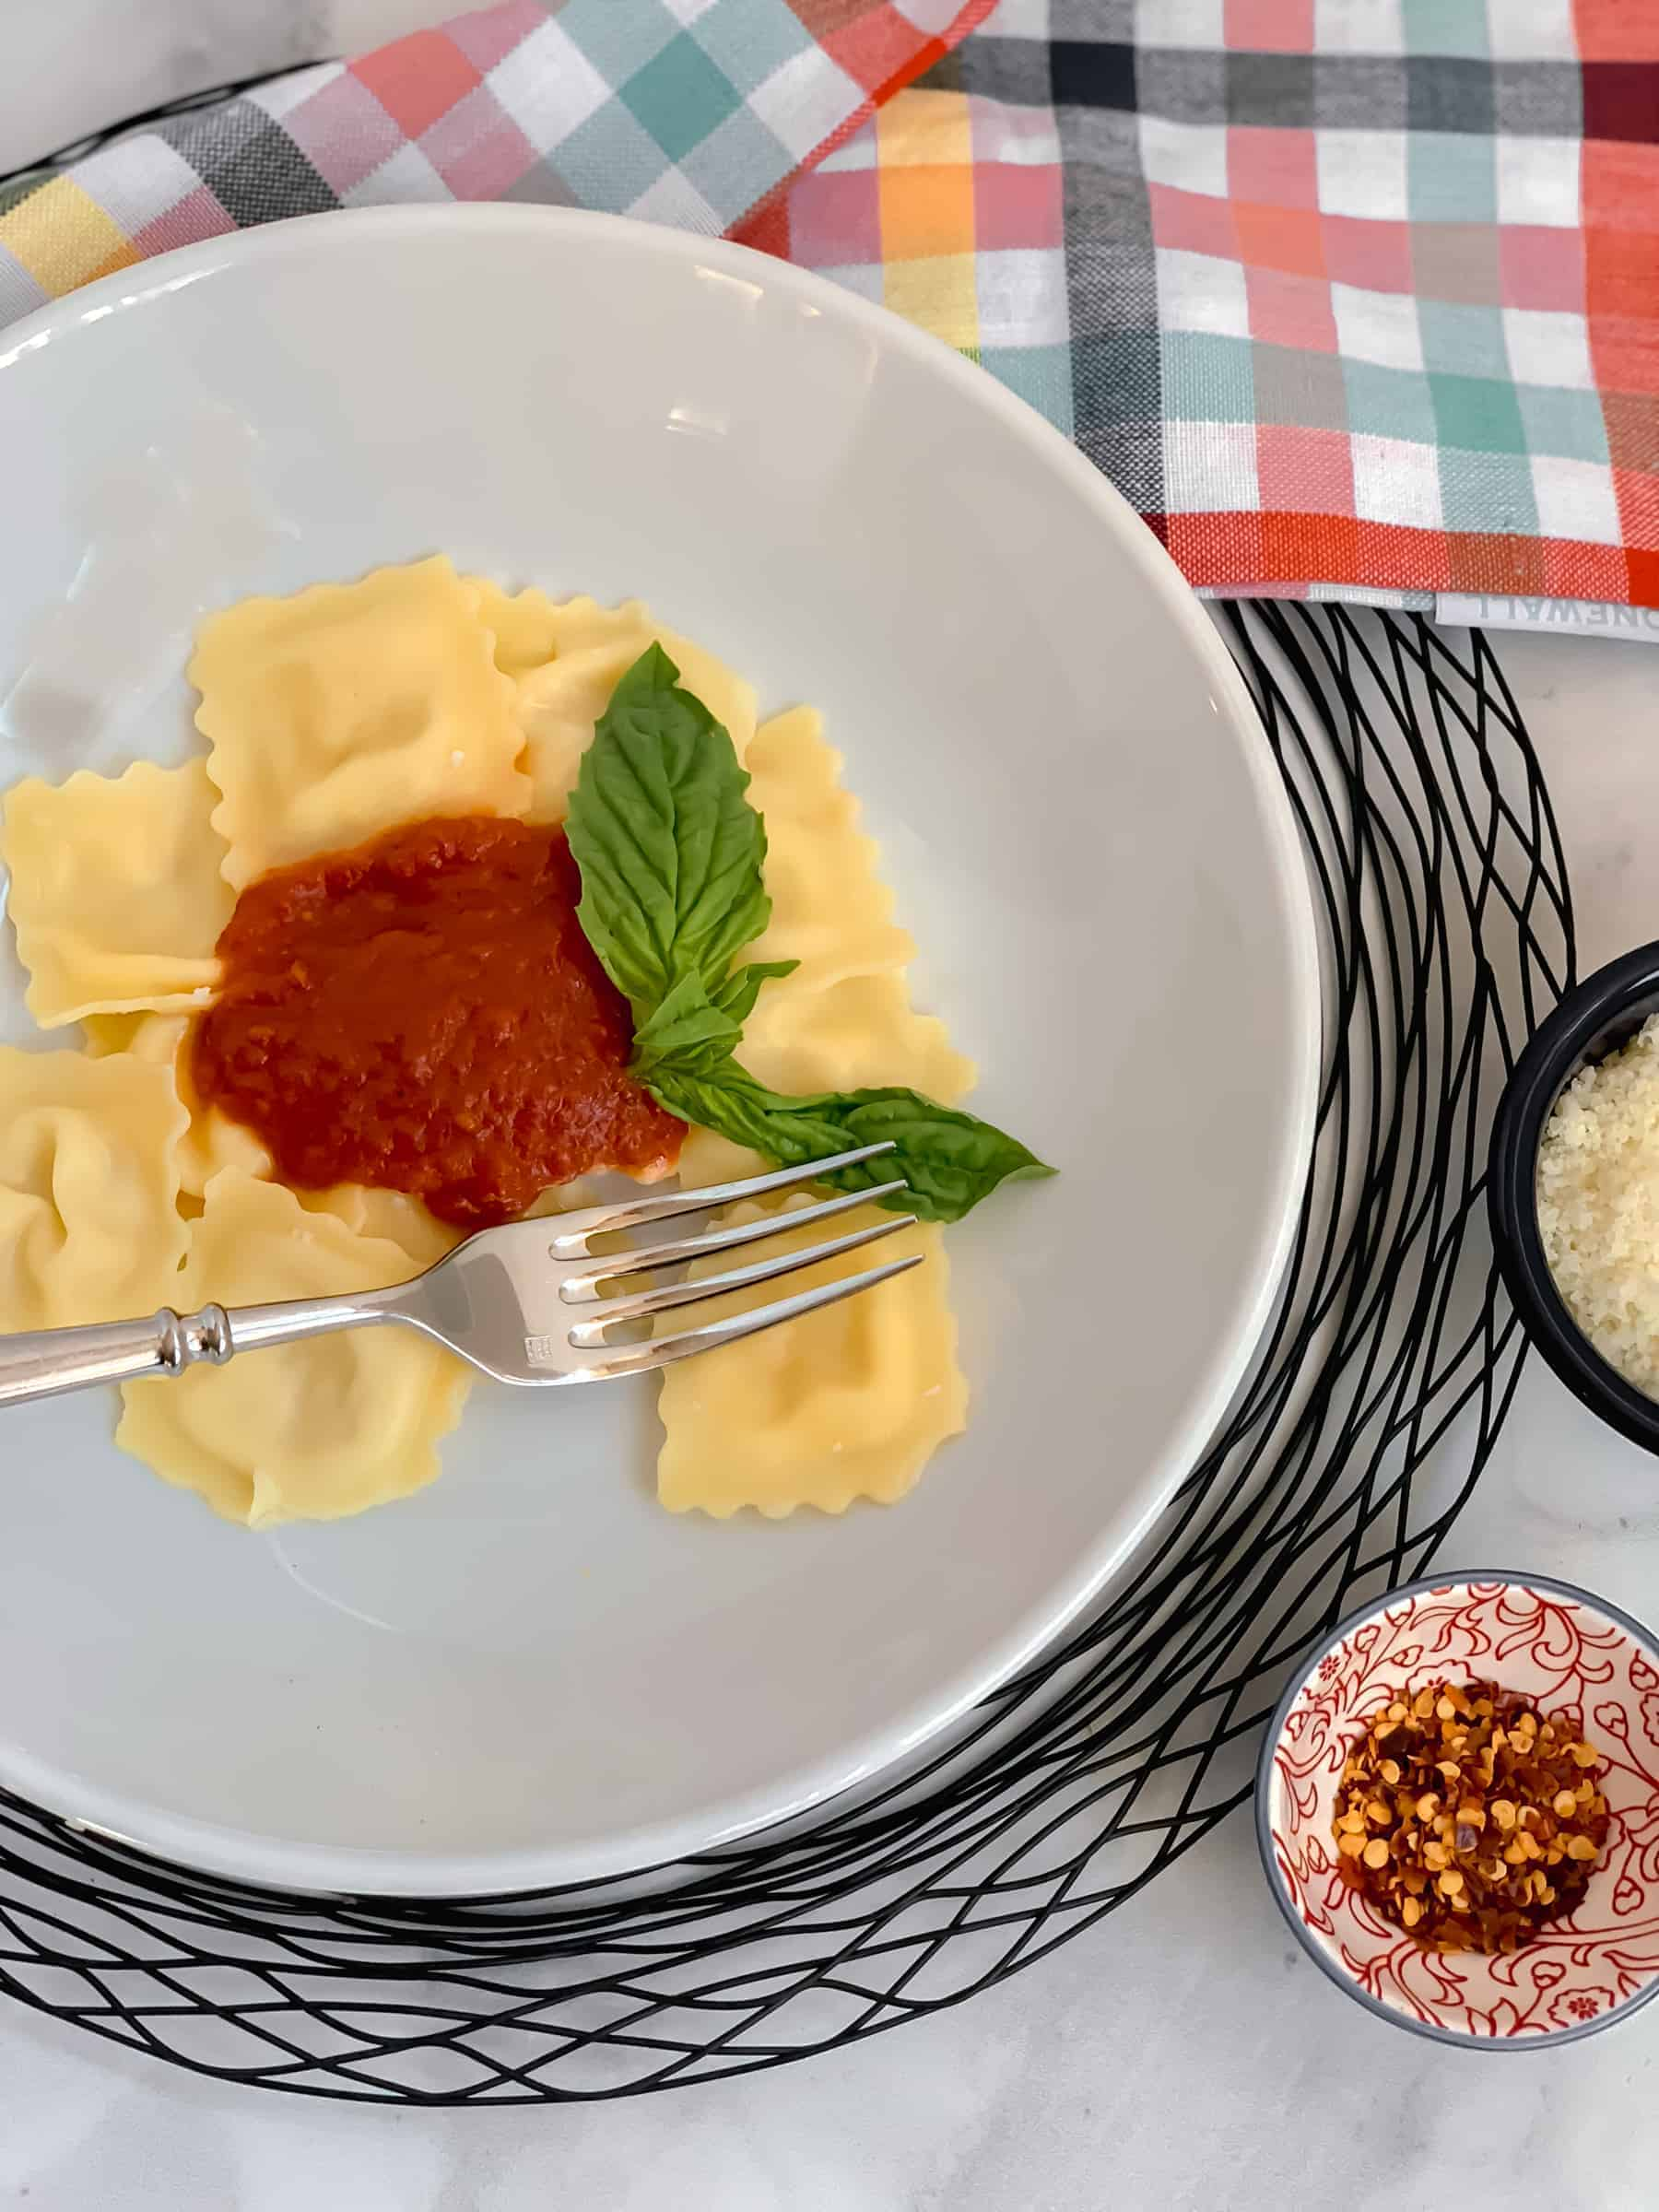 Ravioli with sauce on a white plate